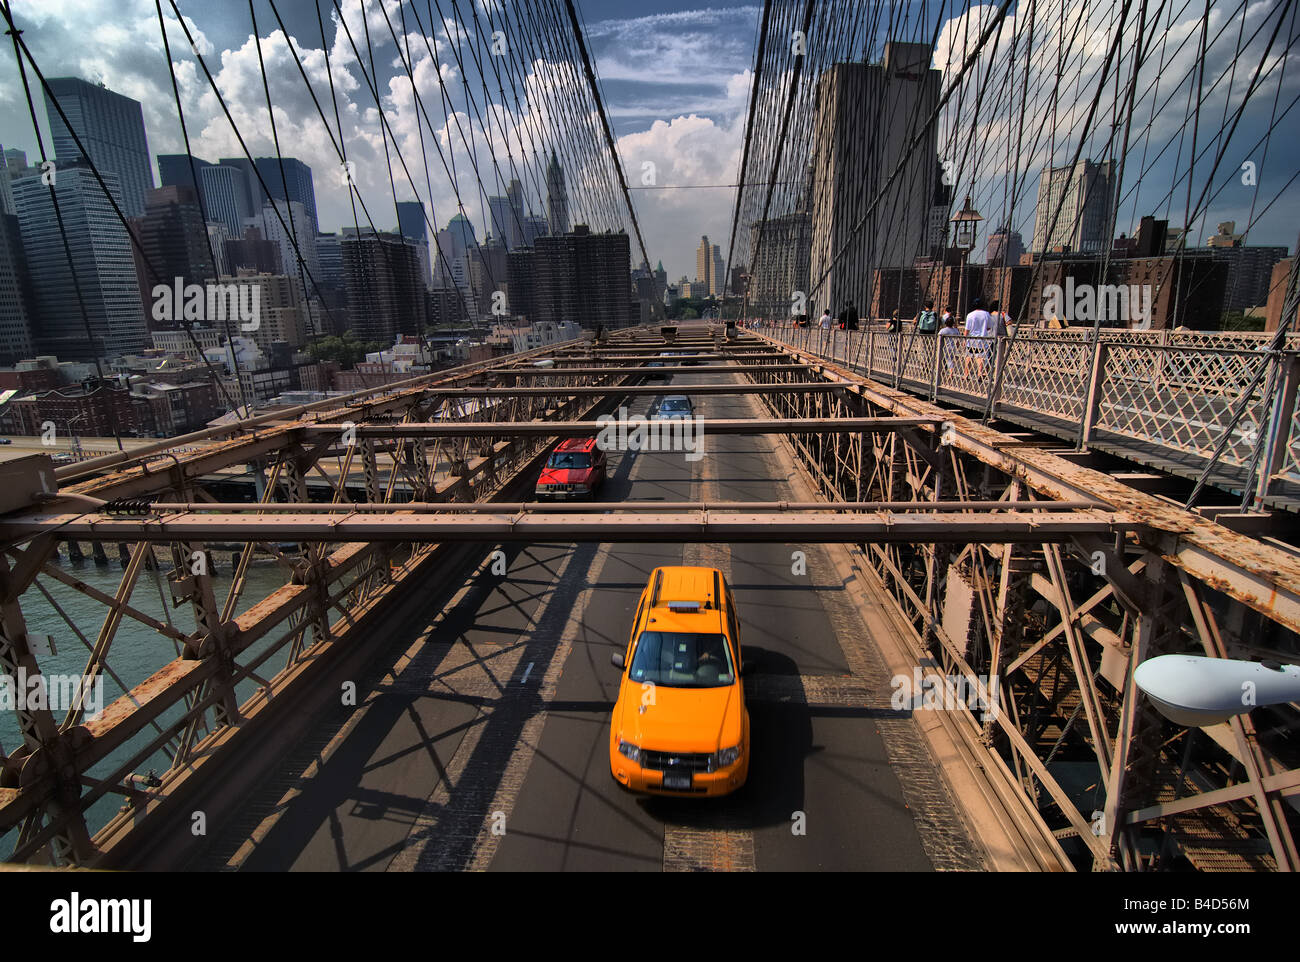 A taxi is among the traffic crossing the Brooklyn Bridge.  Pedestrians can also be seen on the upper walkway. - Stock Image